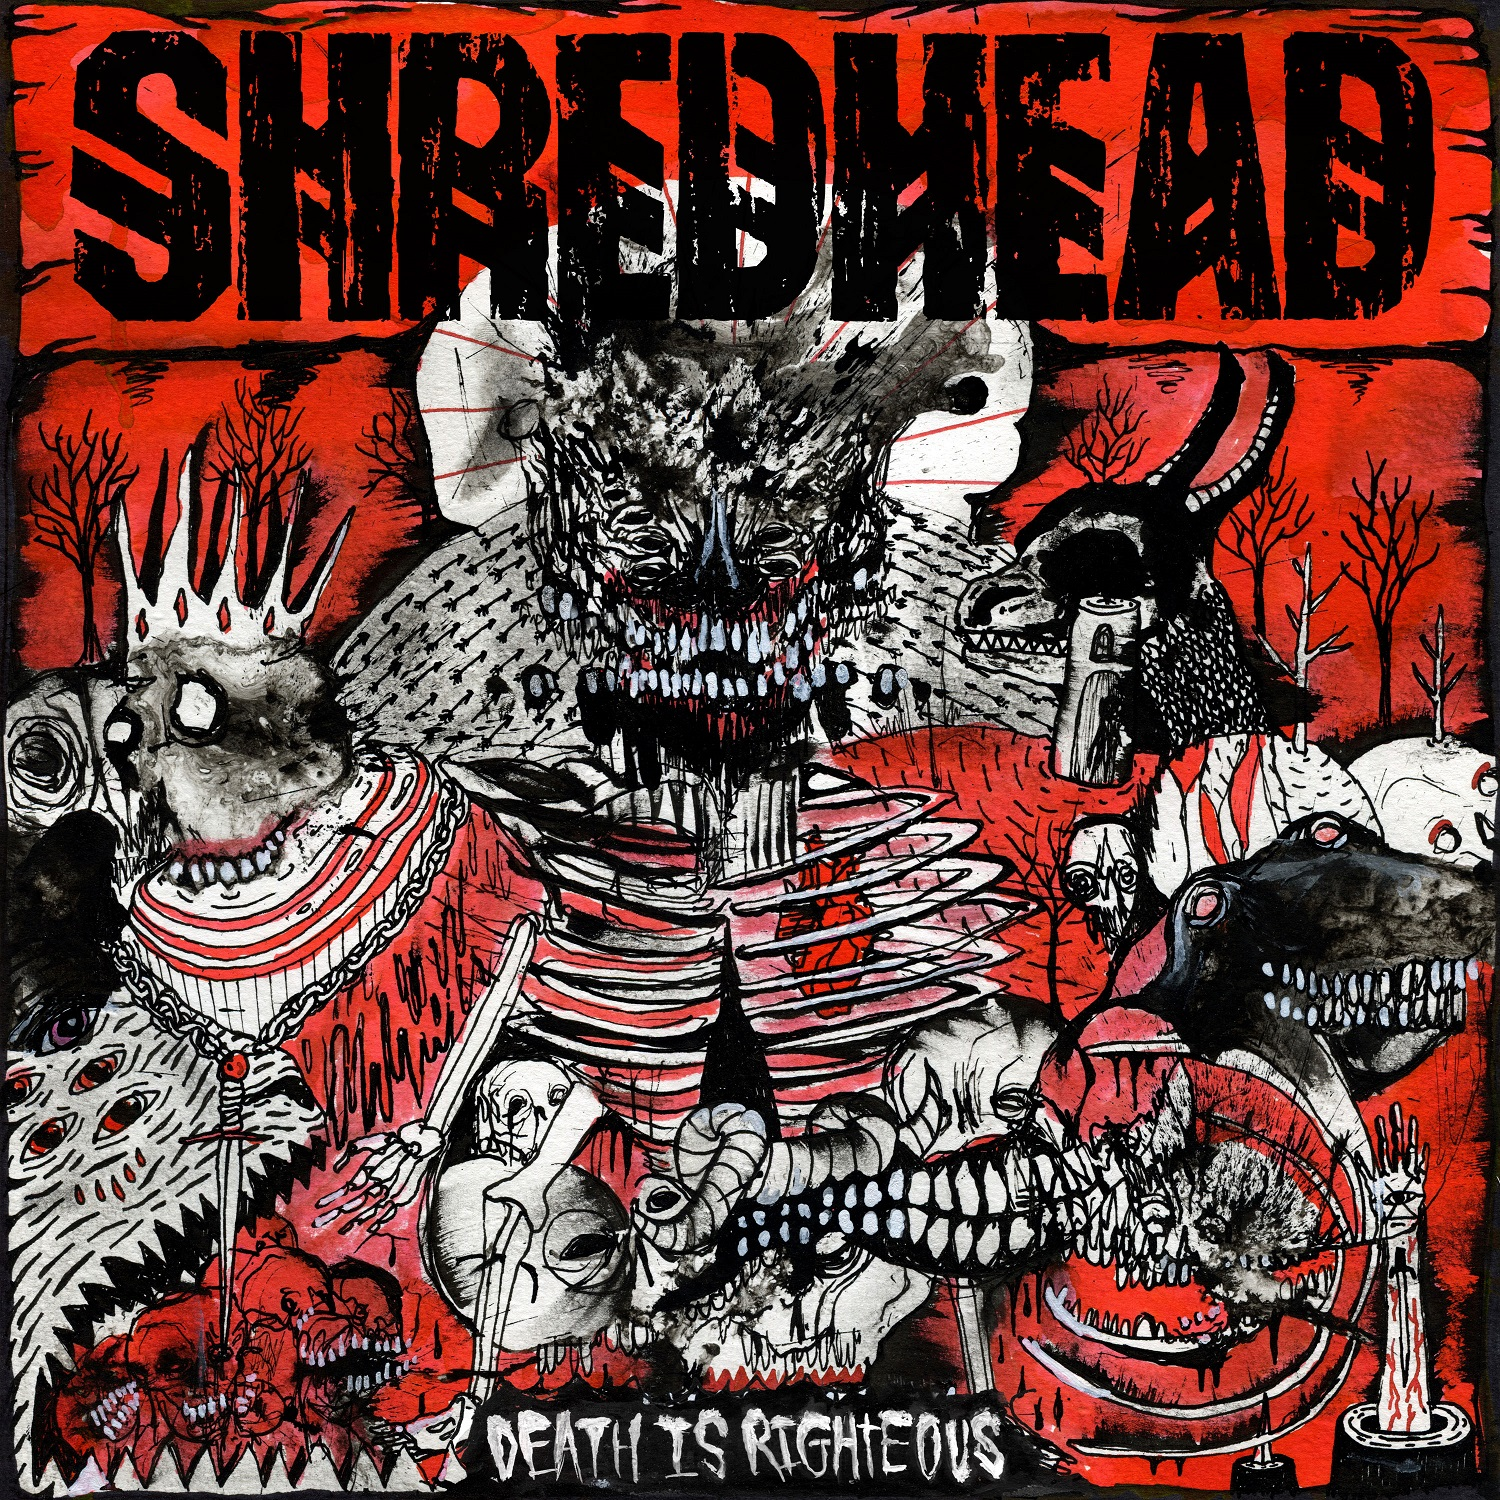 Shredhead – Death is Righteous Review